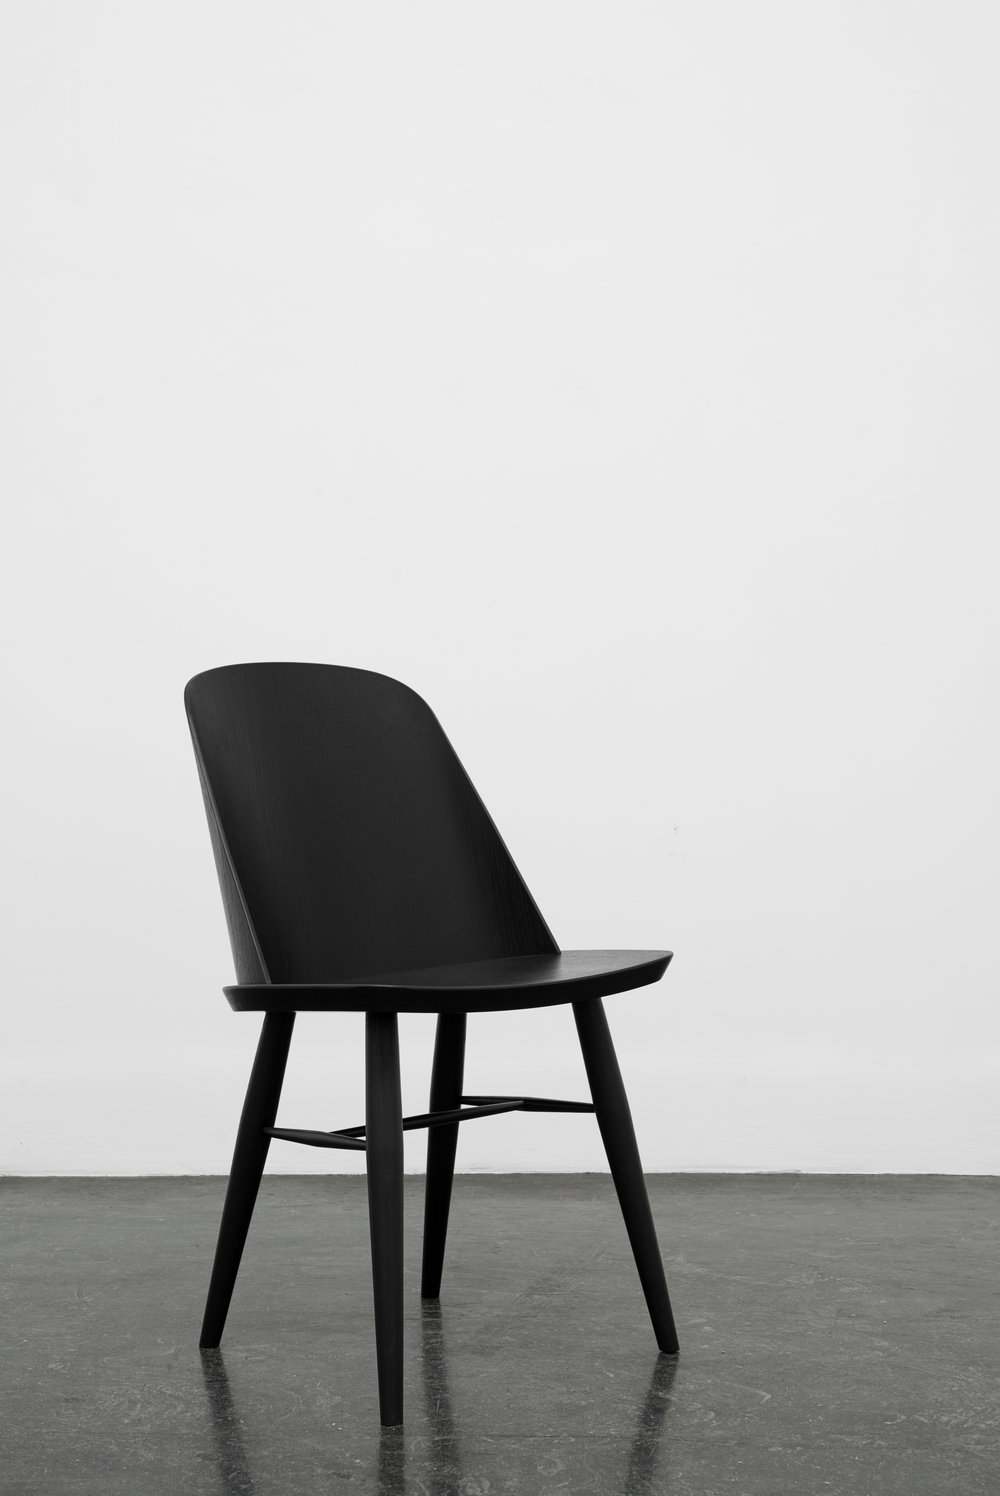 synnes-chair-2015-falke-svatun(5)